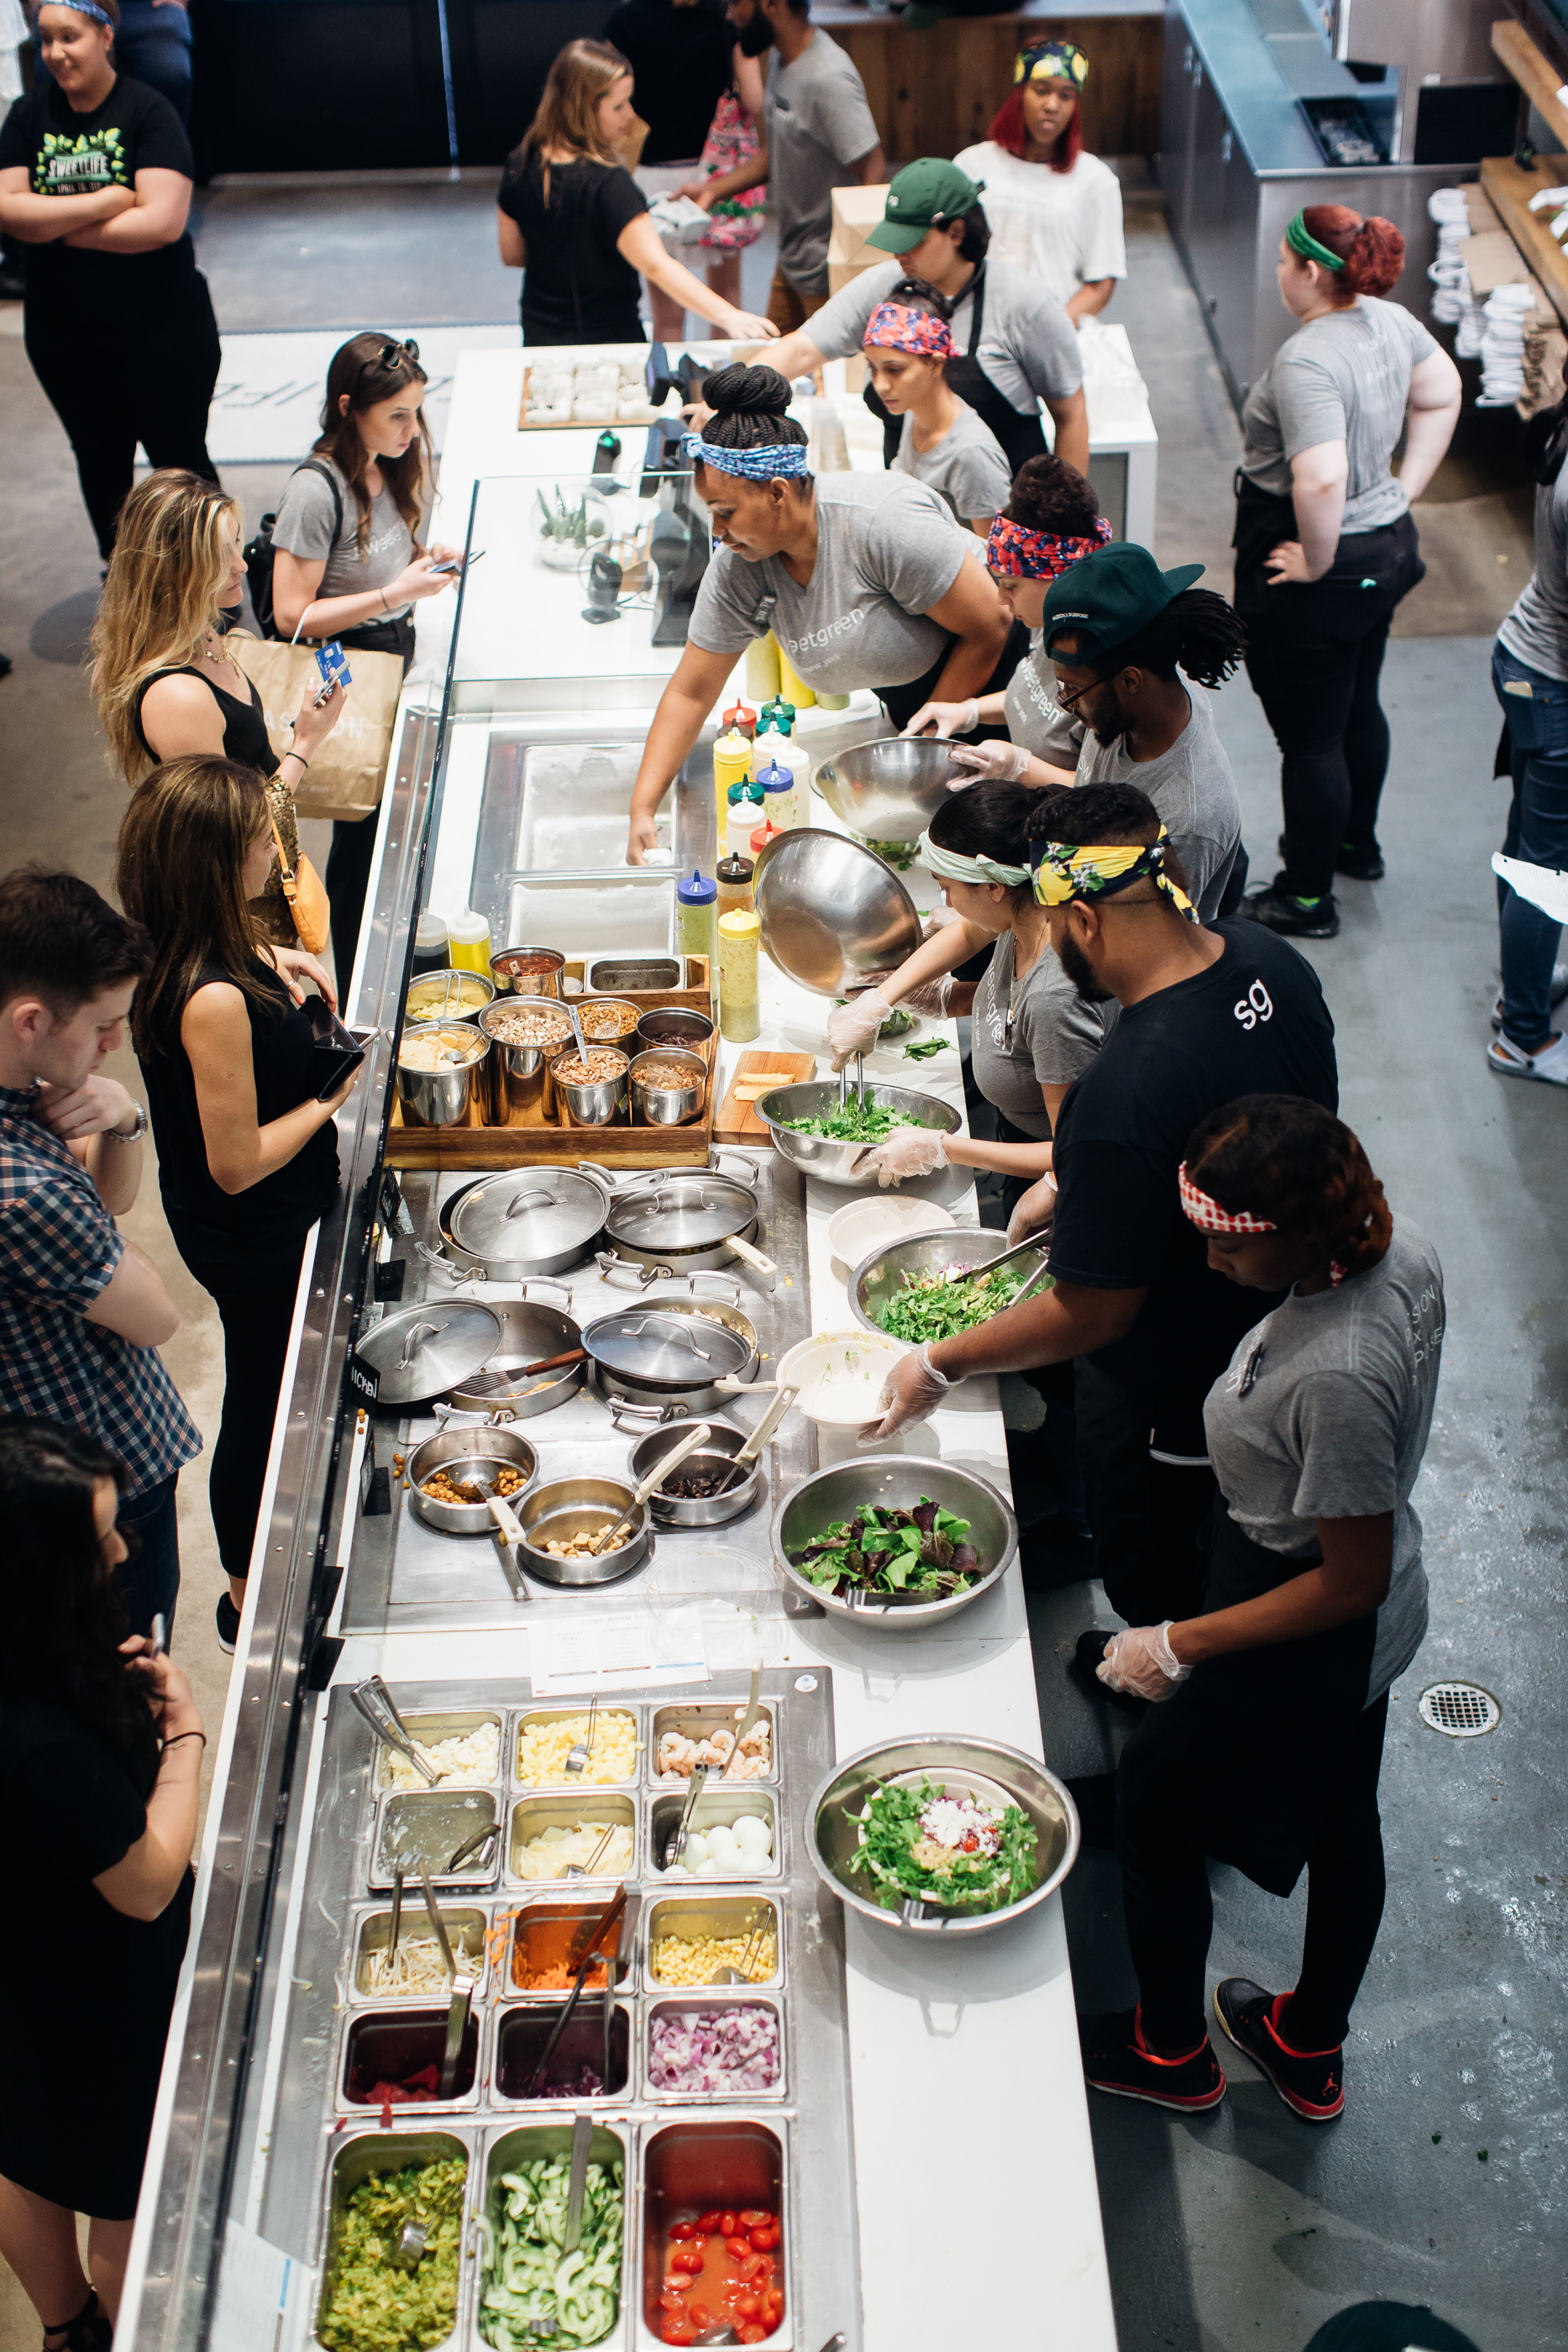 sweetgreen in Washington, D.C. Since the store first opened over ten years ago the company has expanded into 89 locations throughout the country.